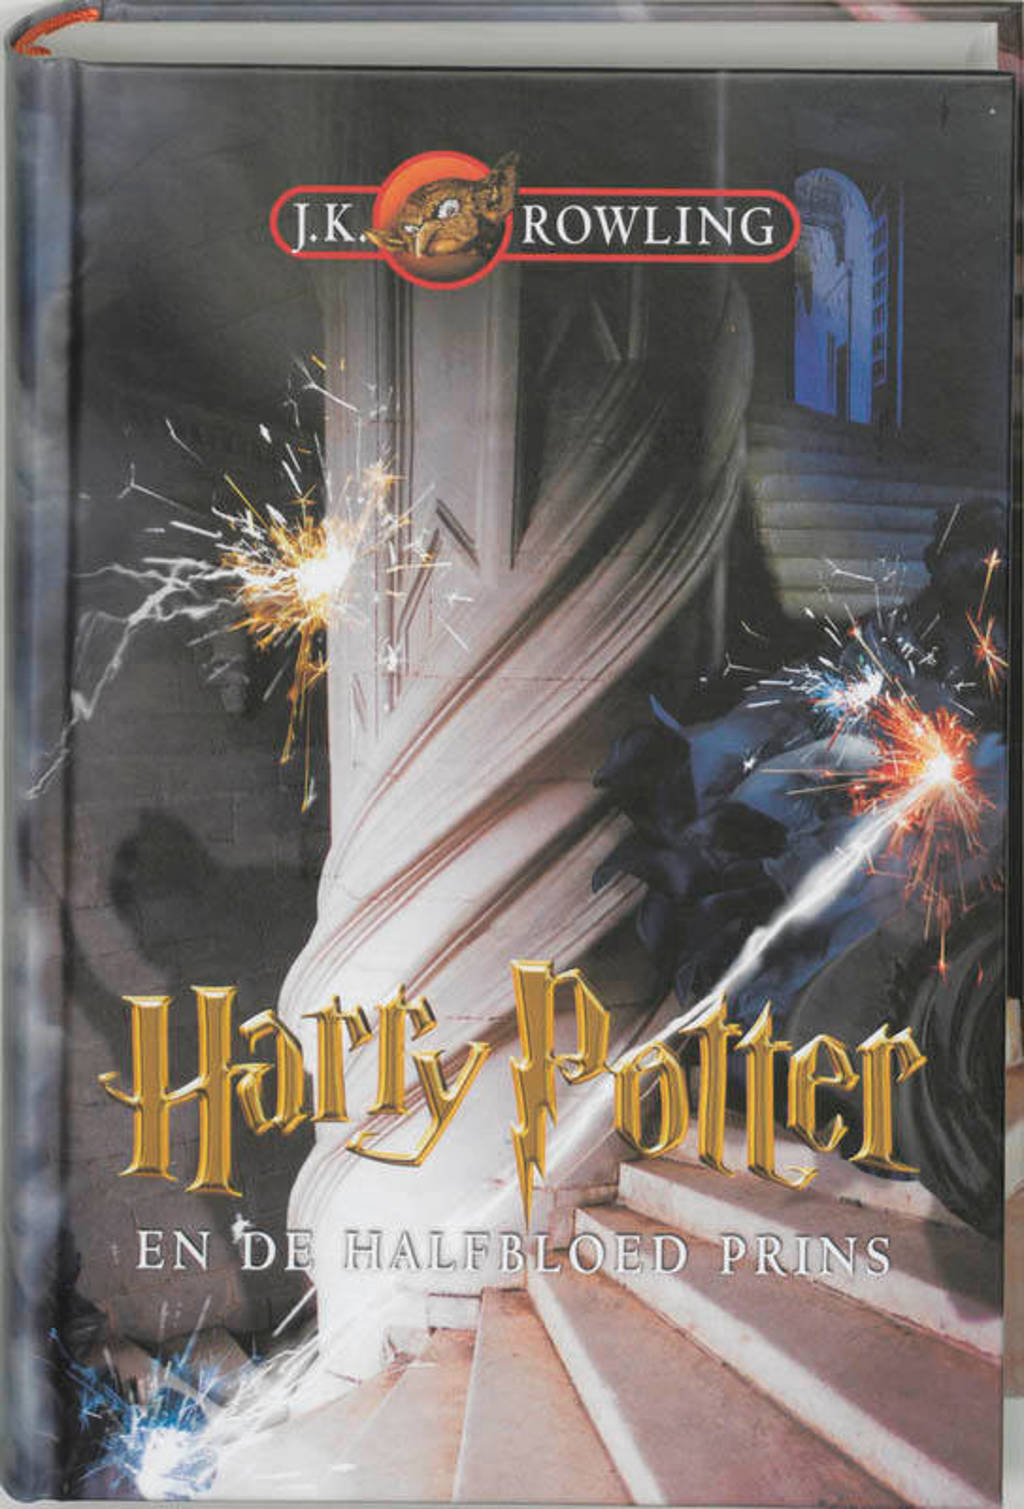 Harry Potter: Harry Potter en de halfbloed prins - J.K. Rowling